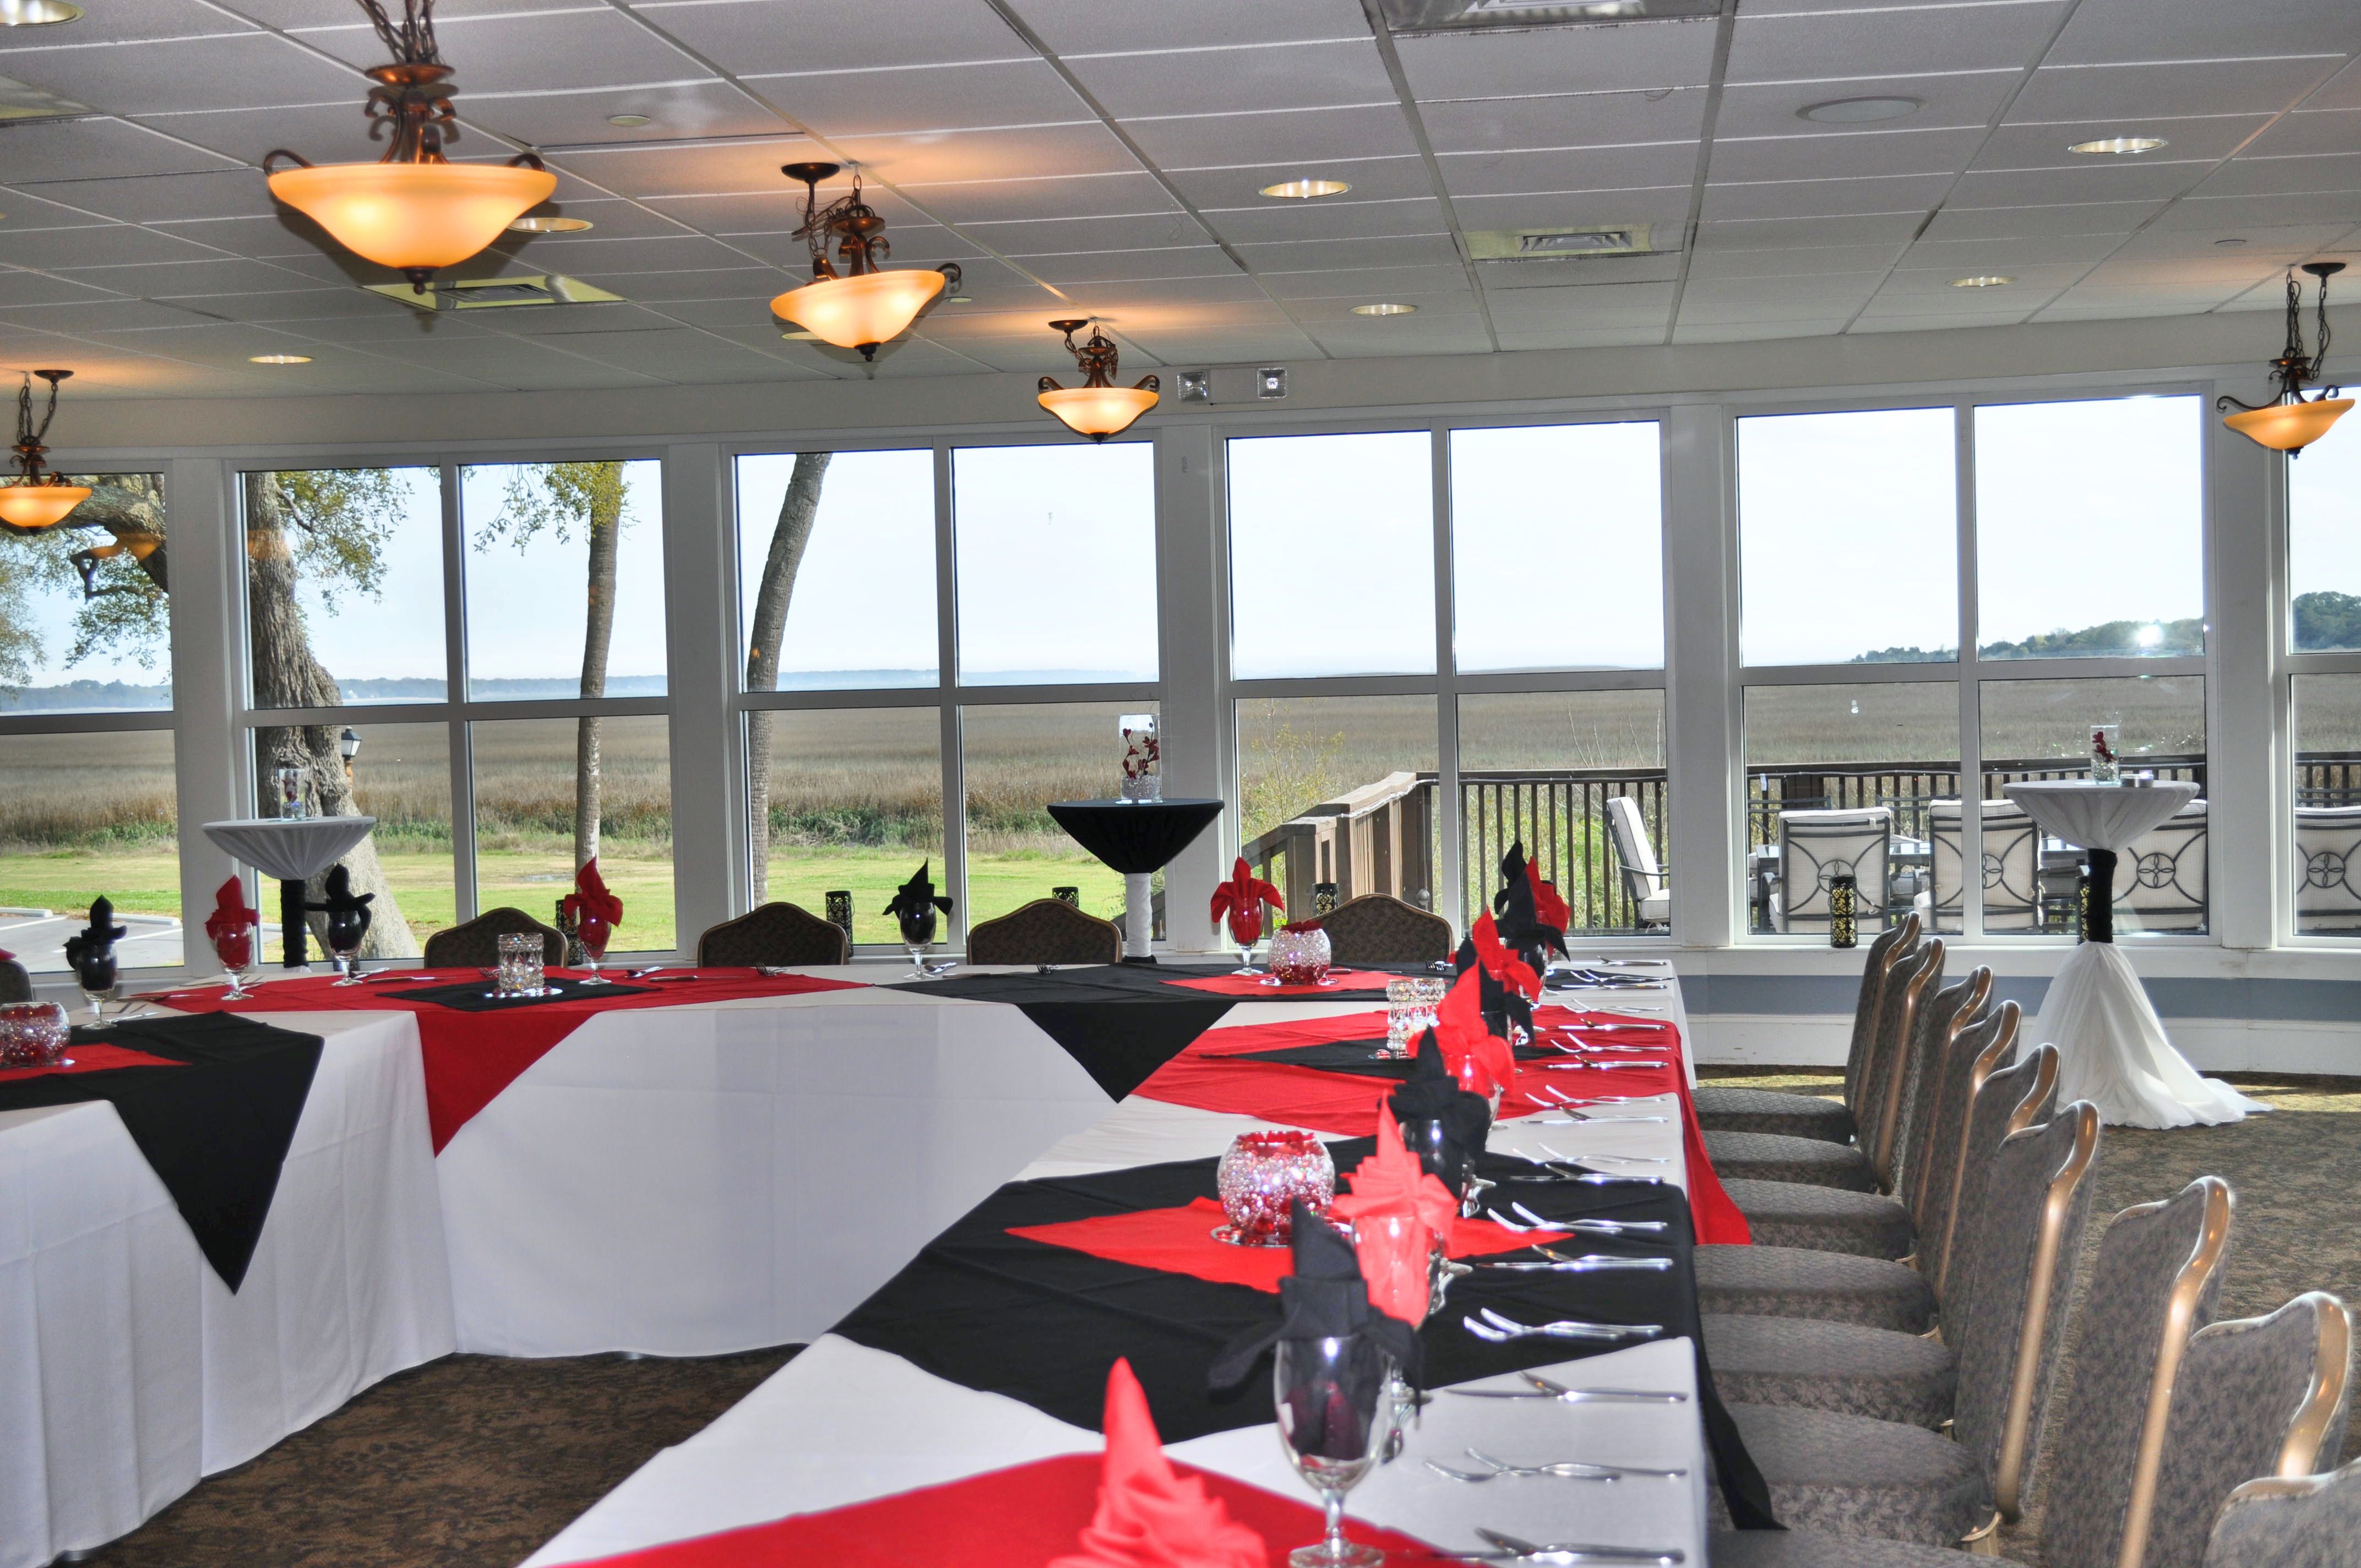 intimate setting with a breathtaking view.